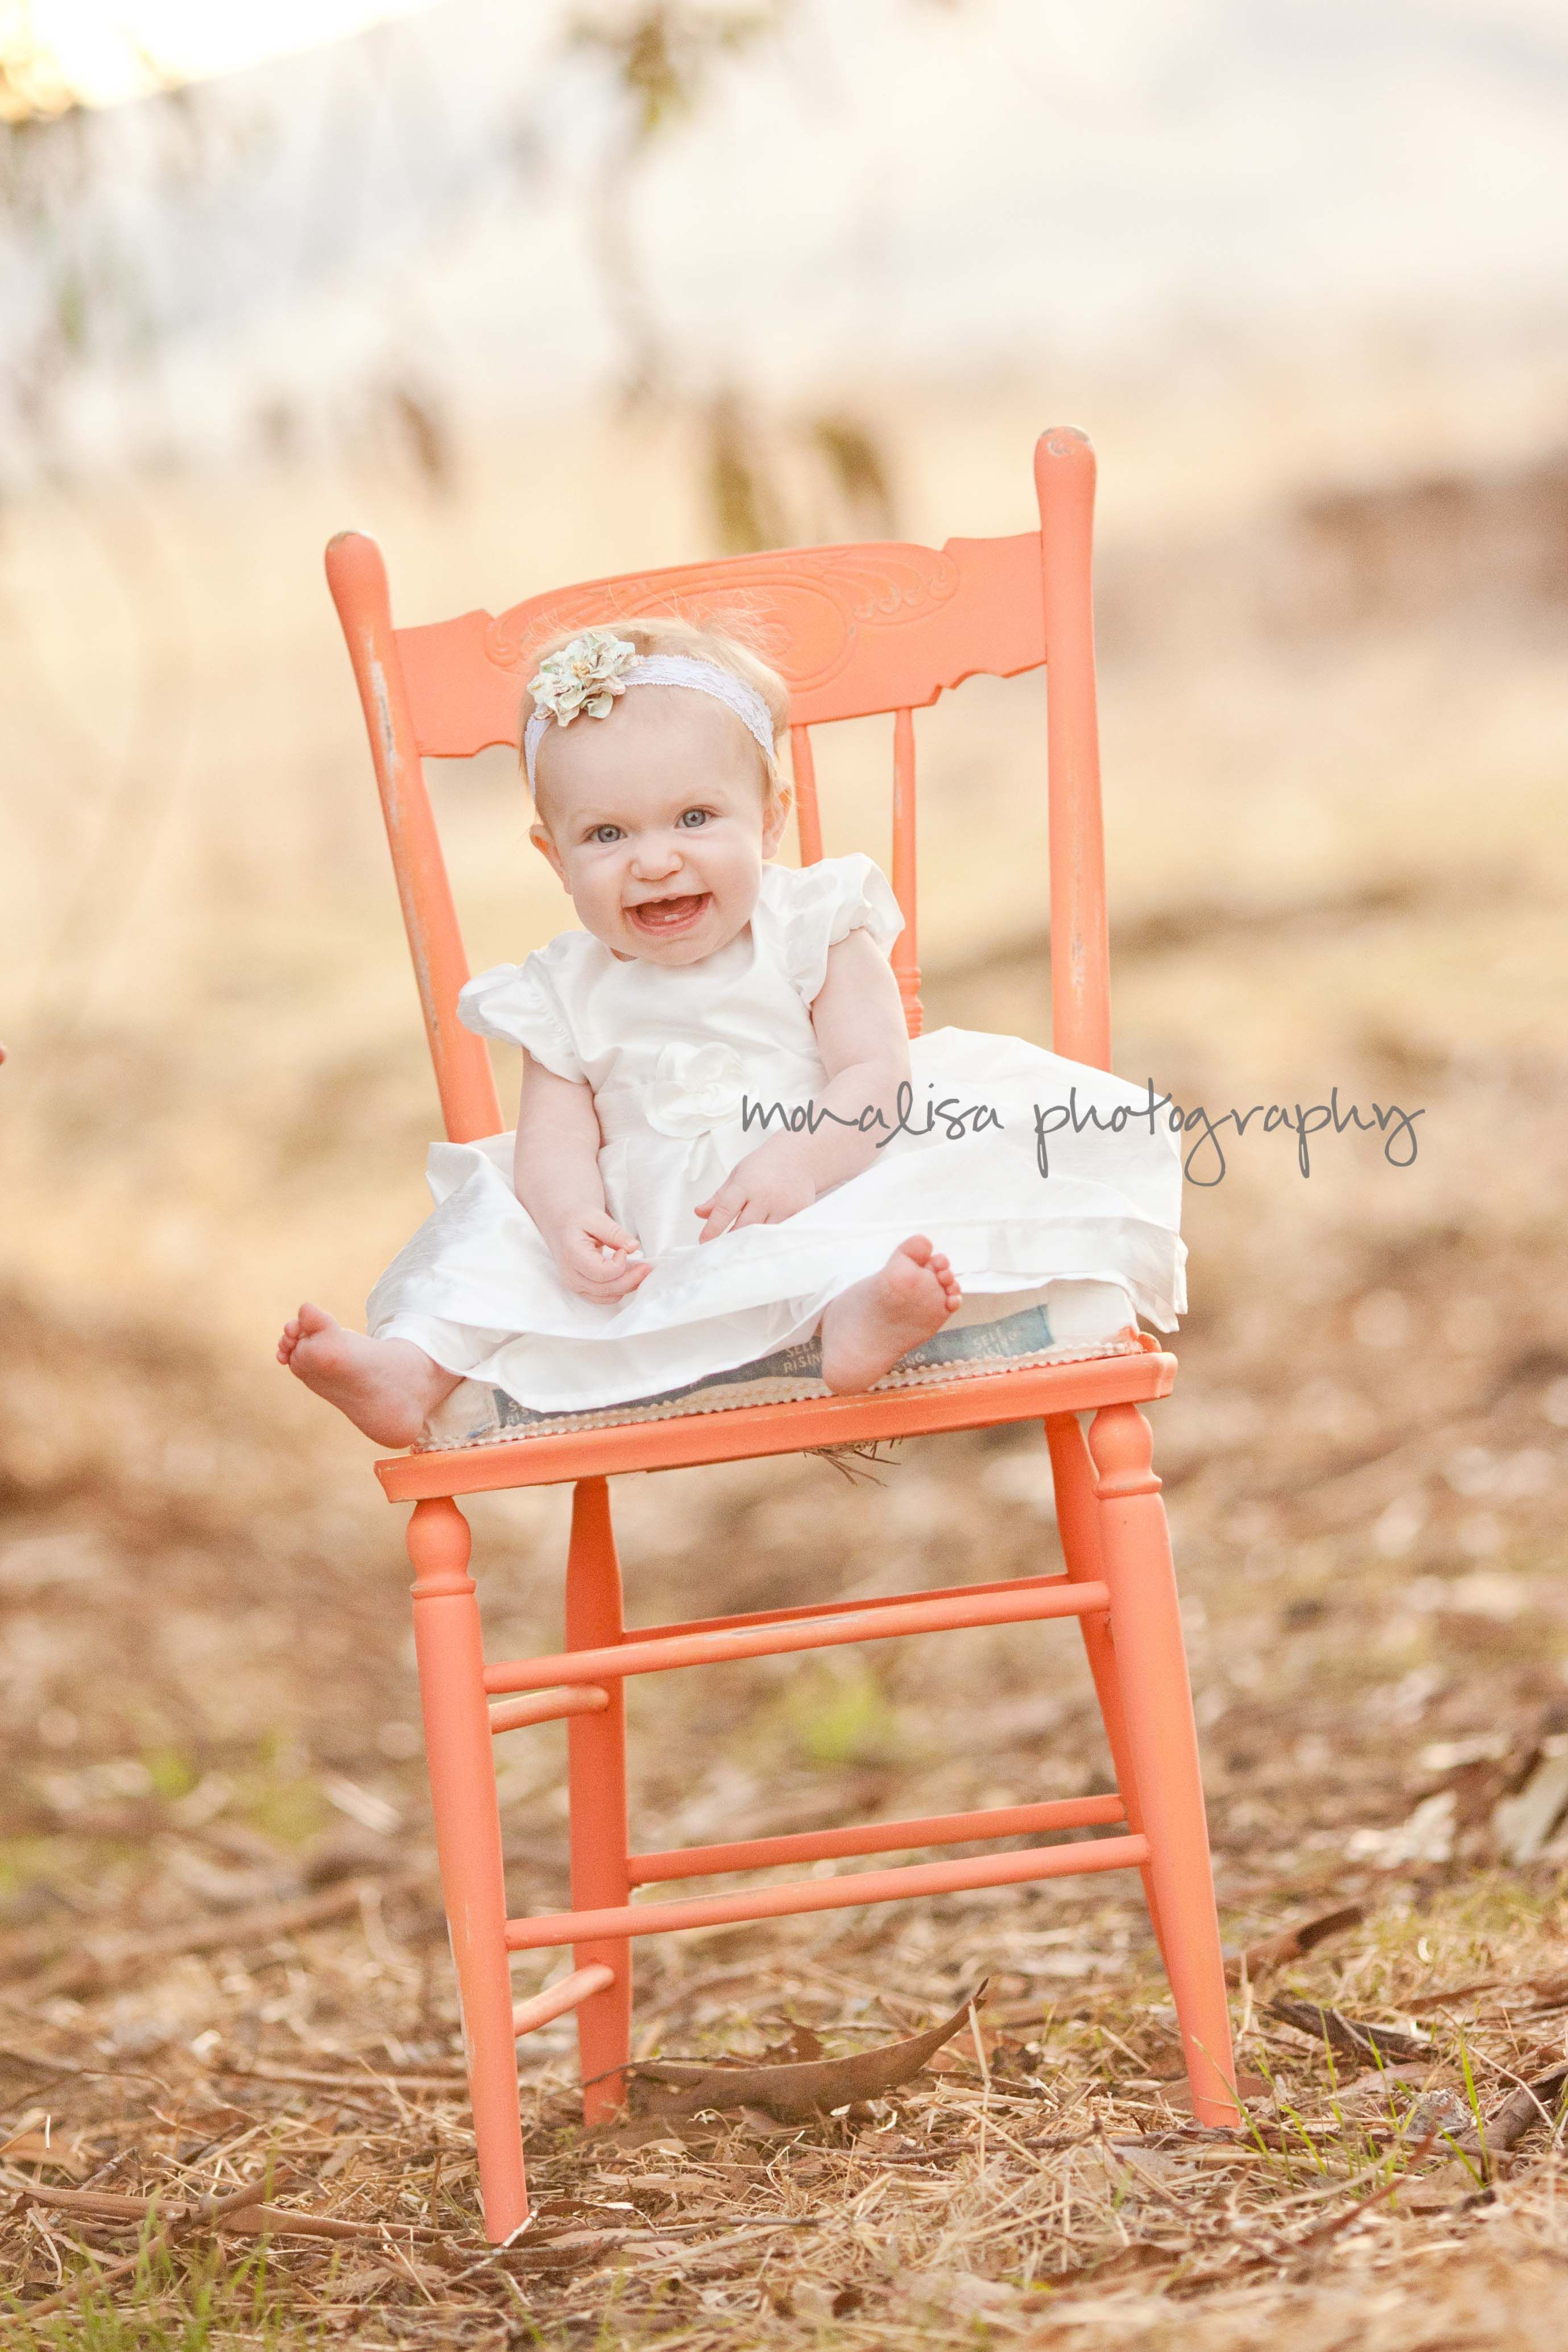 Love 1 Year Old Baby Girl Coral Chair 1 Year Old Baby Girl